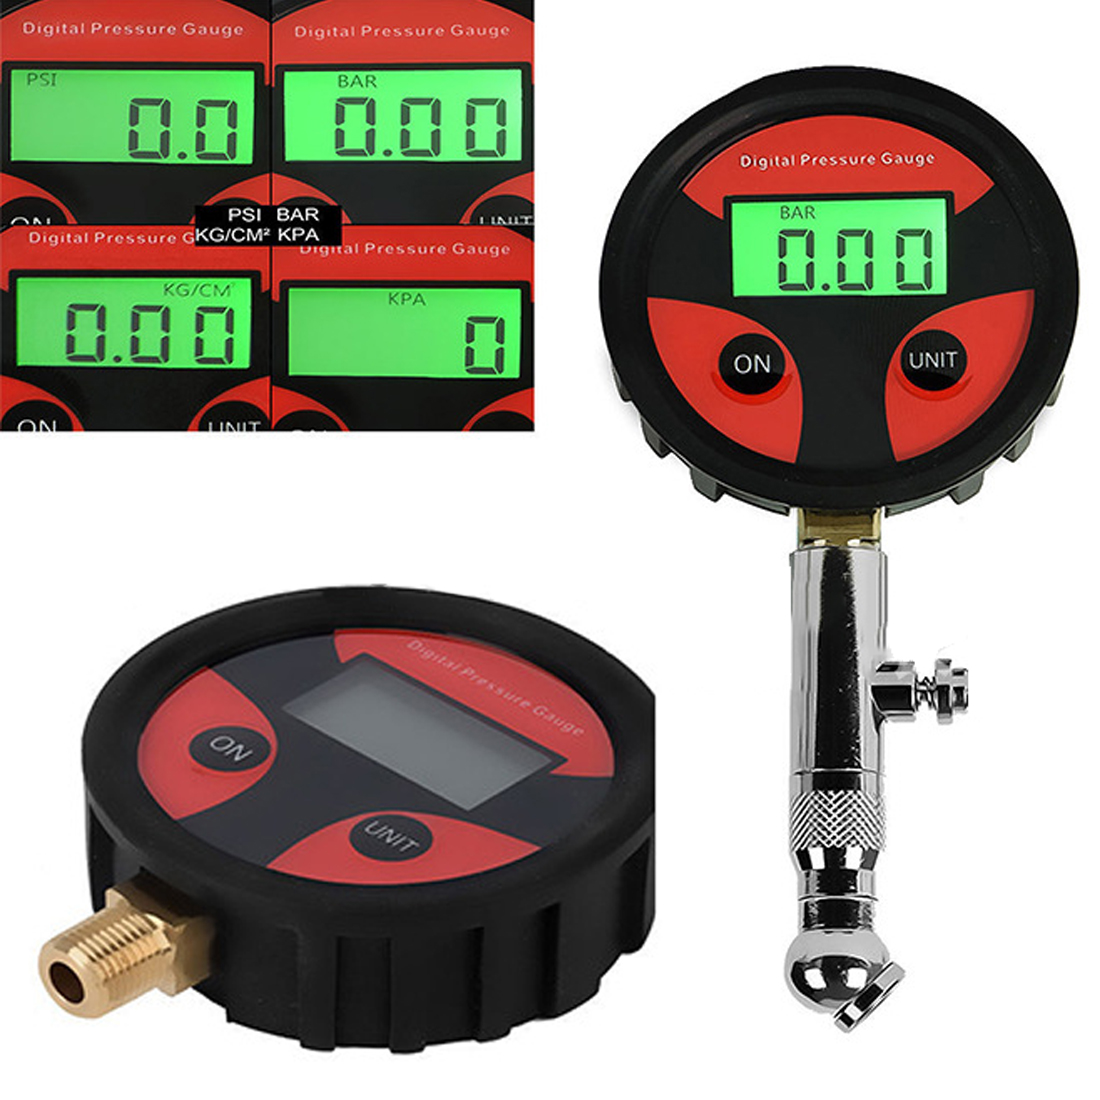 0-200PSI LCD Digital Tyre Tire Air Pressure Gauge Motorcycle Car Truck Bike Tester Monitoring System 360 Rotation